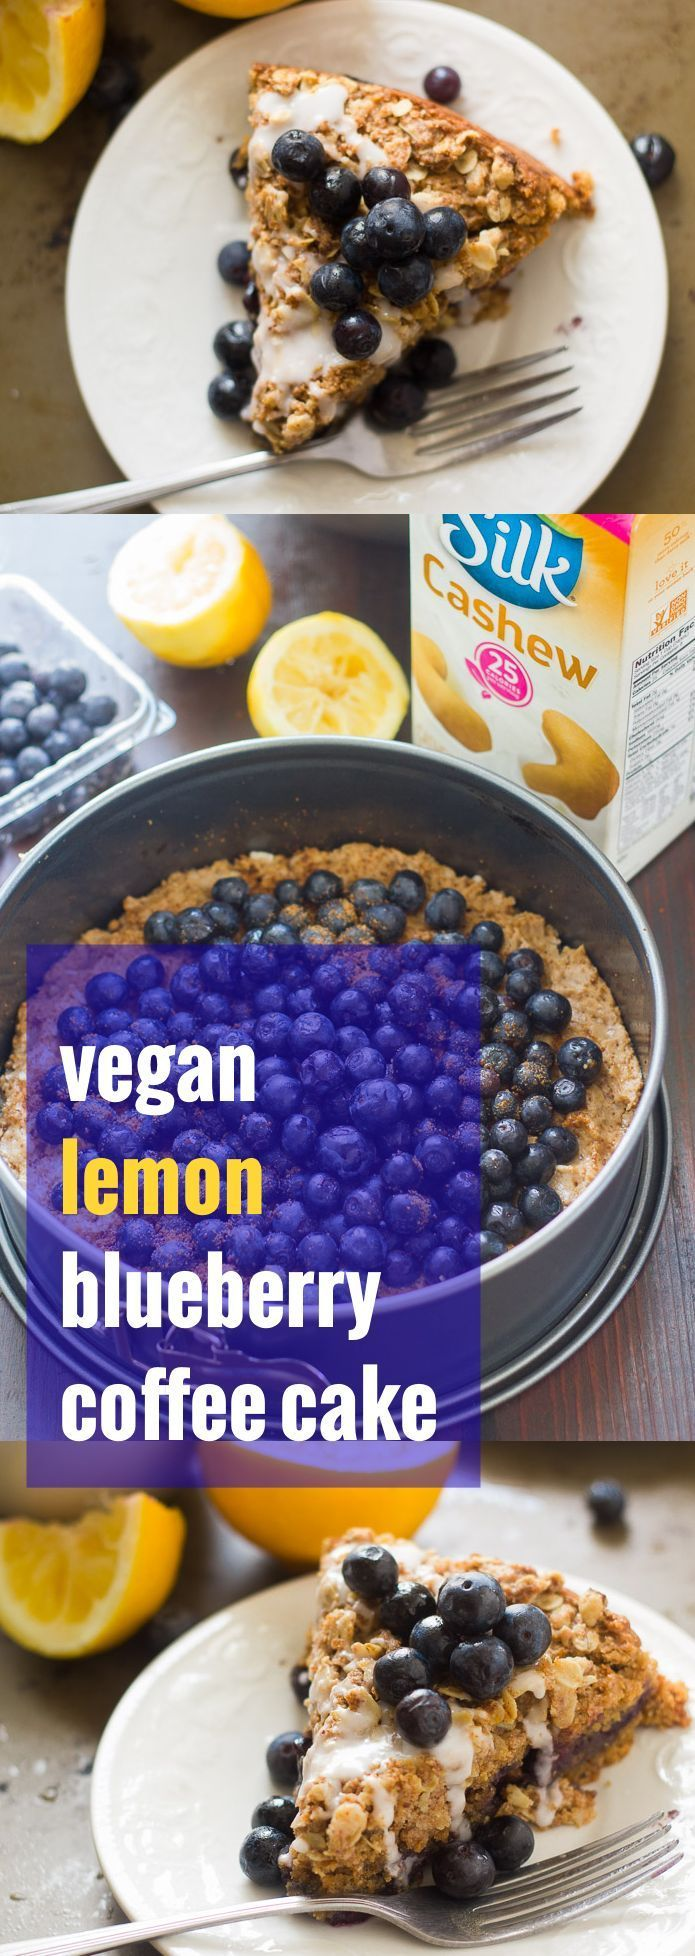 This vegan coffee cake is rich, crumbly, flavored with a hint of lemon, and layered with a filling of juicy blueberries.